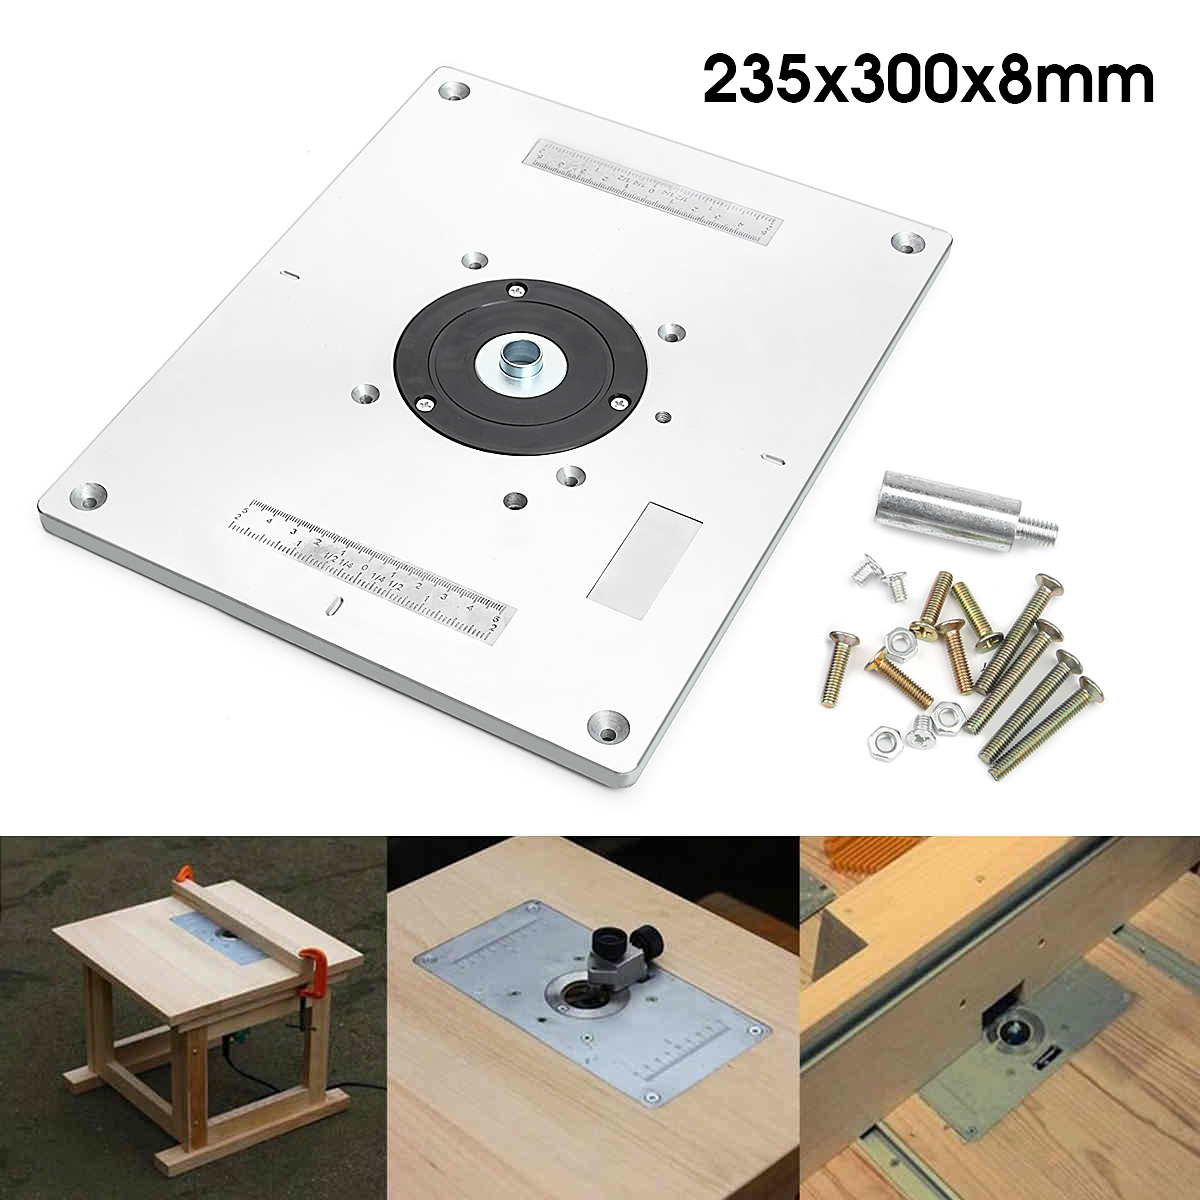 Universal router table insert plate aluminium alloy for diy best price aluminum router table insert plate for popular router trimmers models engrving machine diy woodworking greentooth Gallery